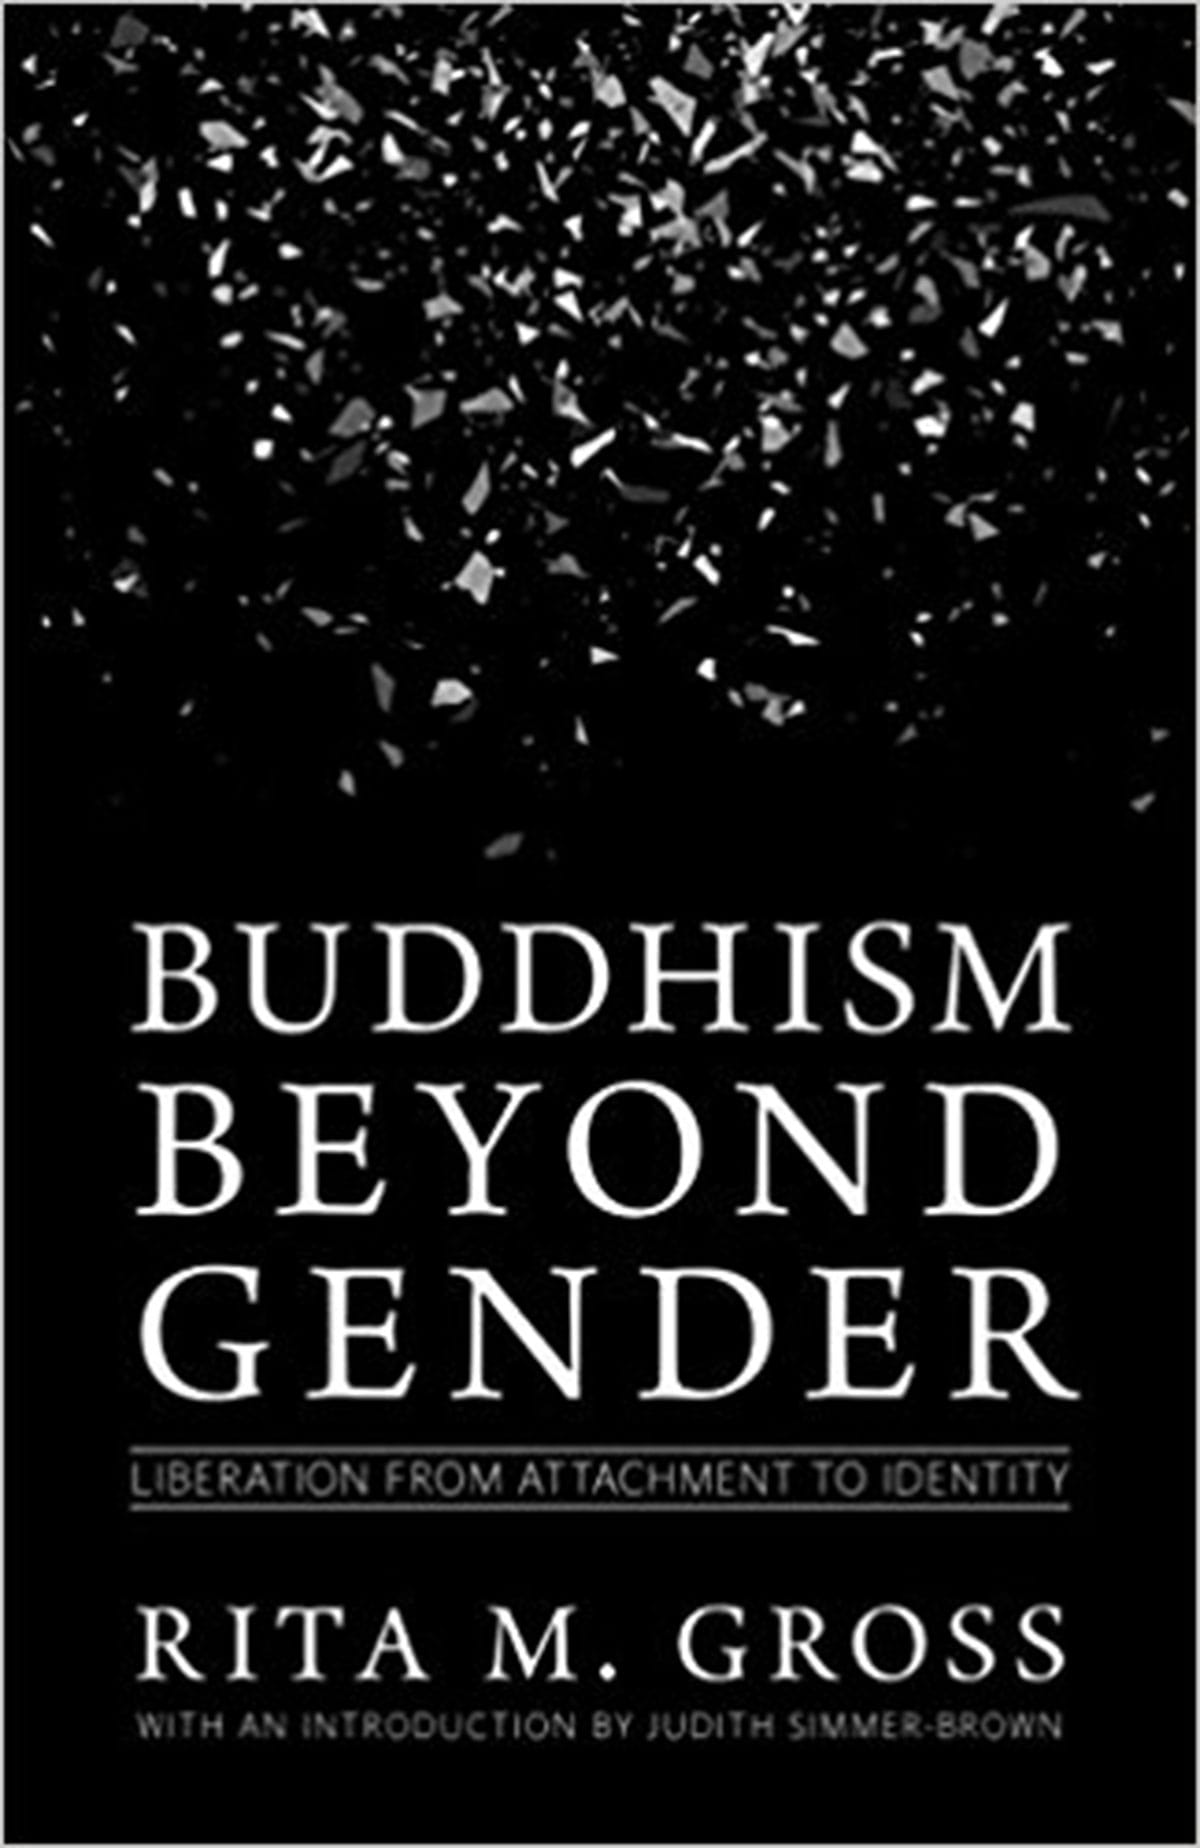 Book cover for Buddhism beyond gender. There is broken glass raining down over the top of a black background.